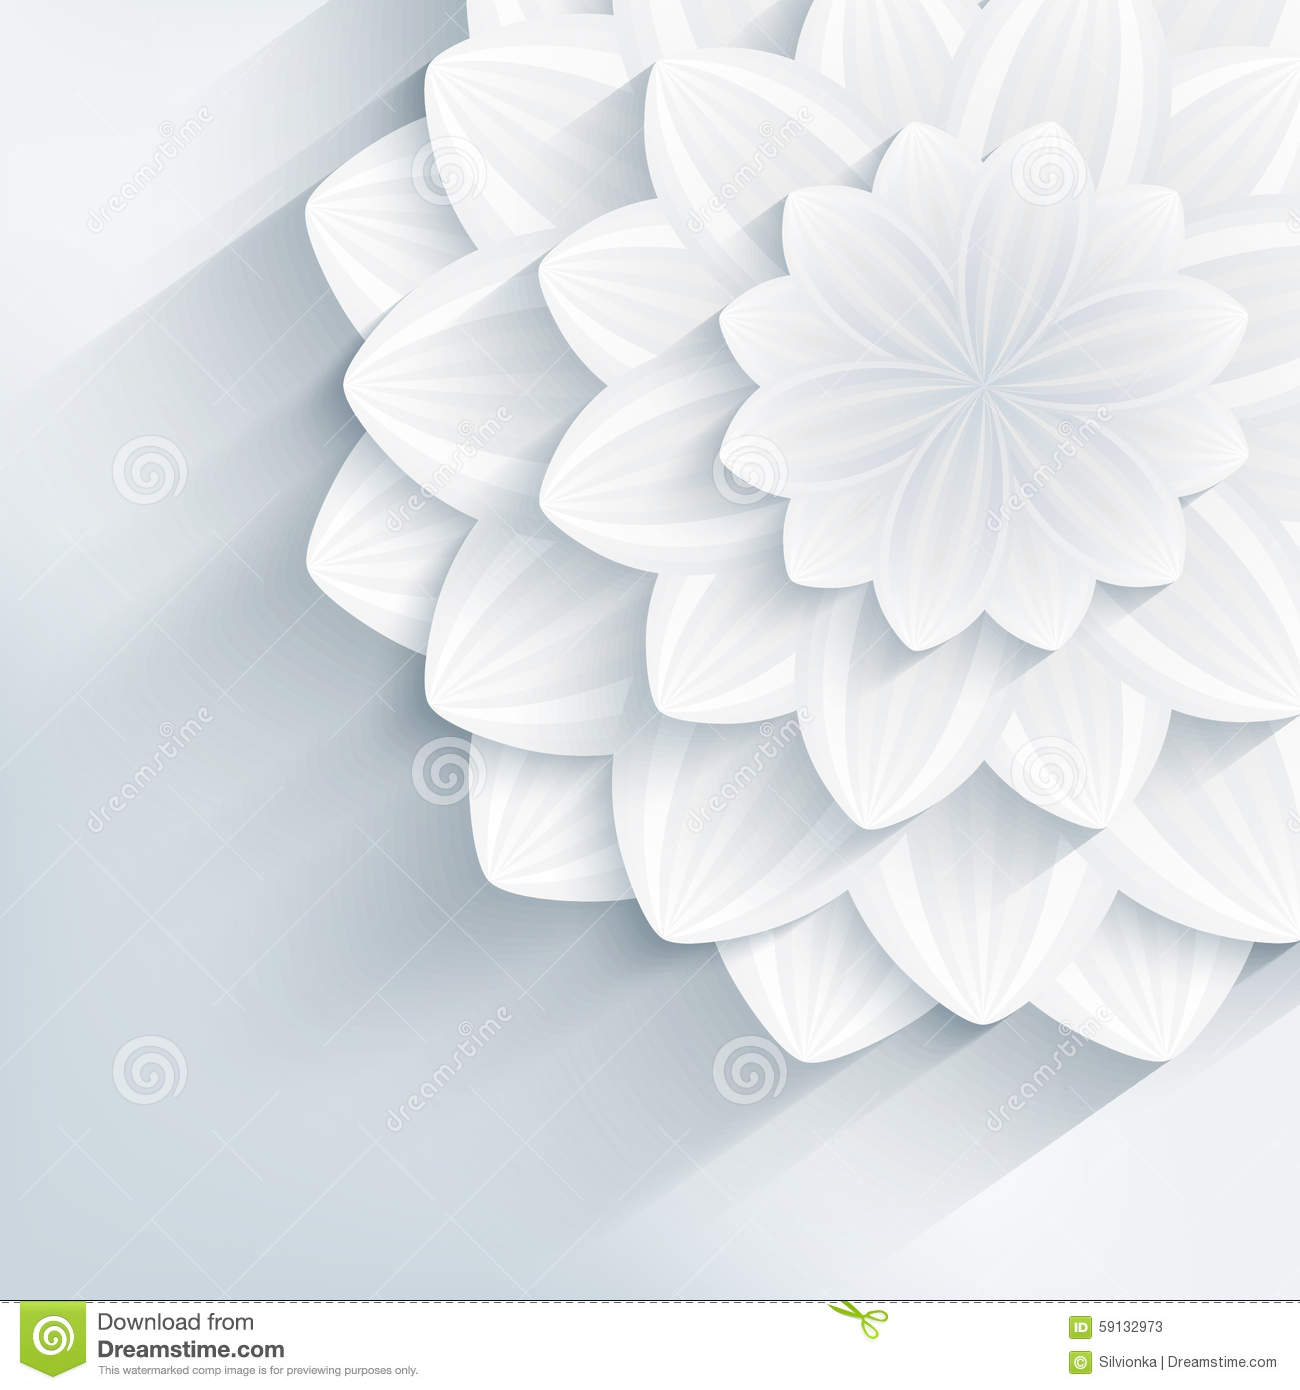 Trendy background with grey 3d flowers stock vector for 3d white flower wallpaper